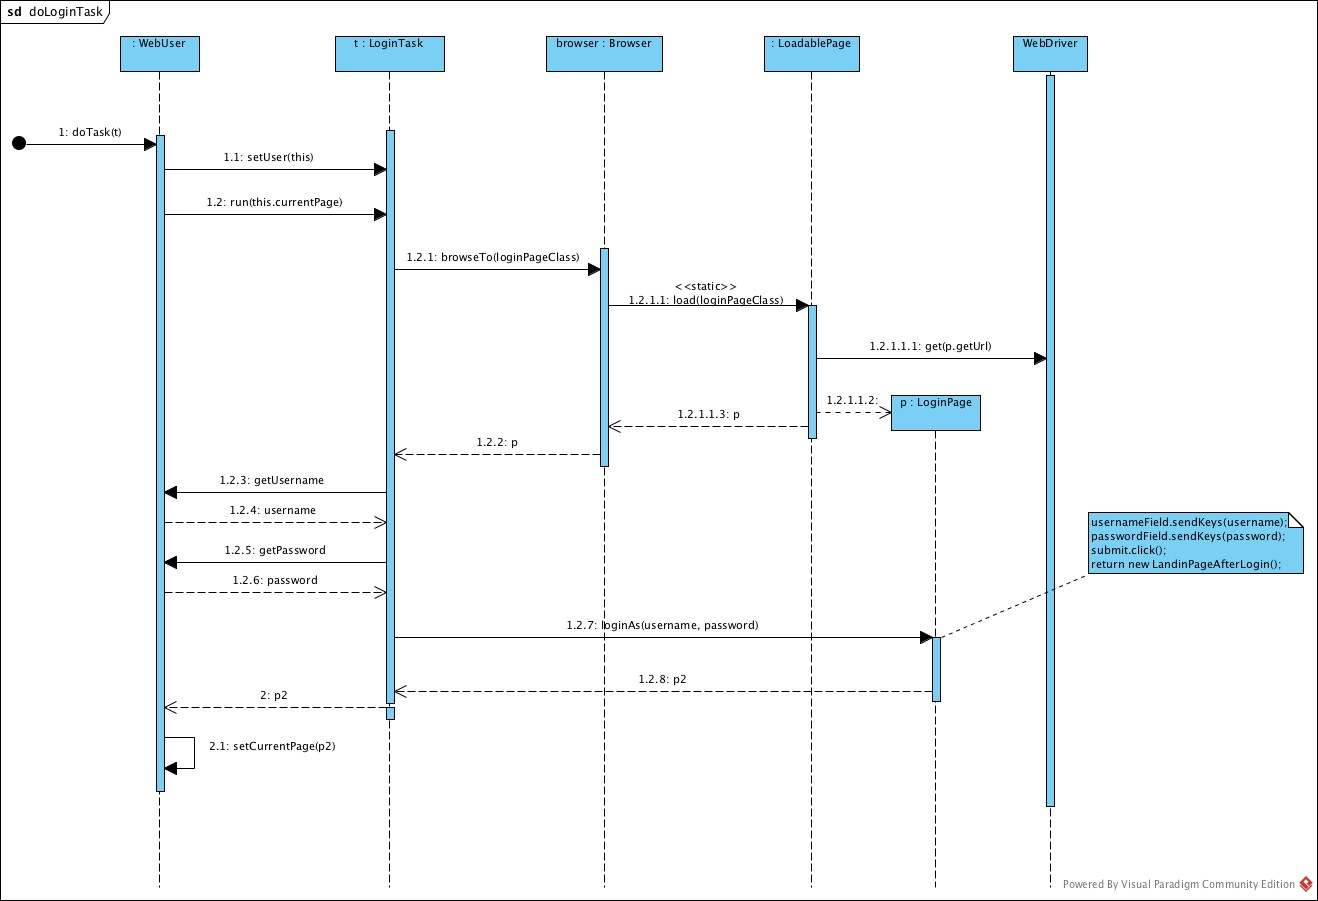 Graphviz Uml Sequence Diagram - SmartDraw Diagrams